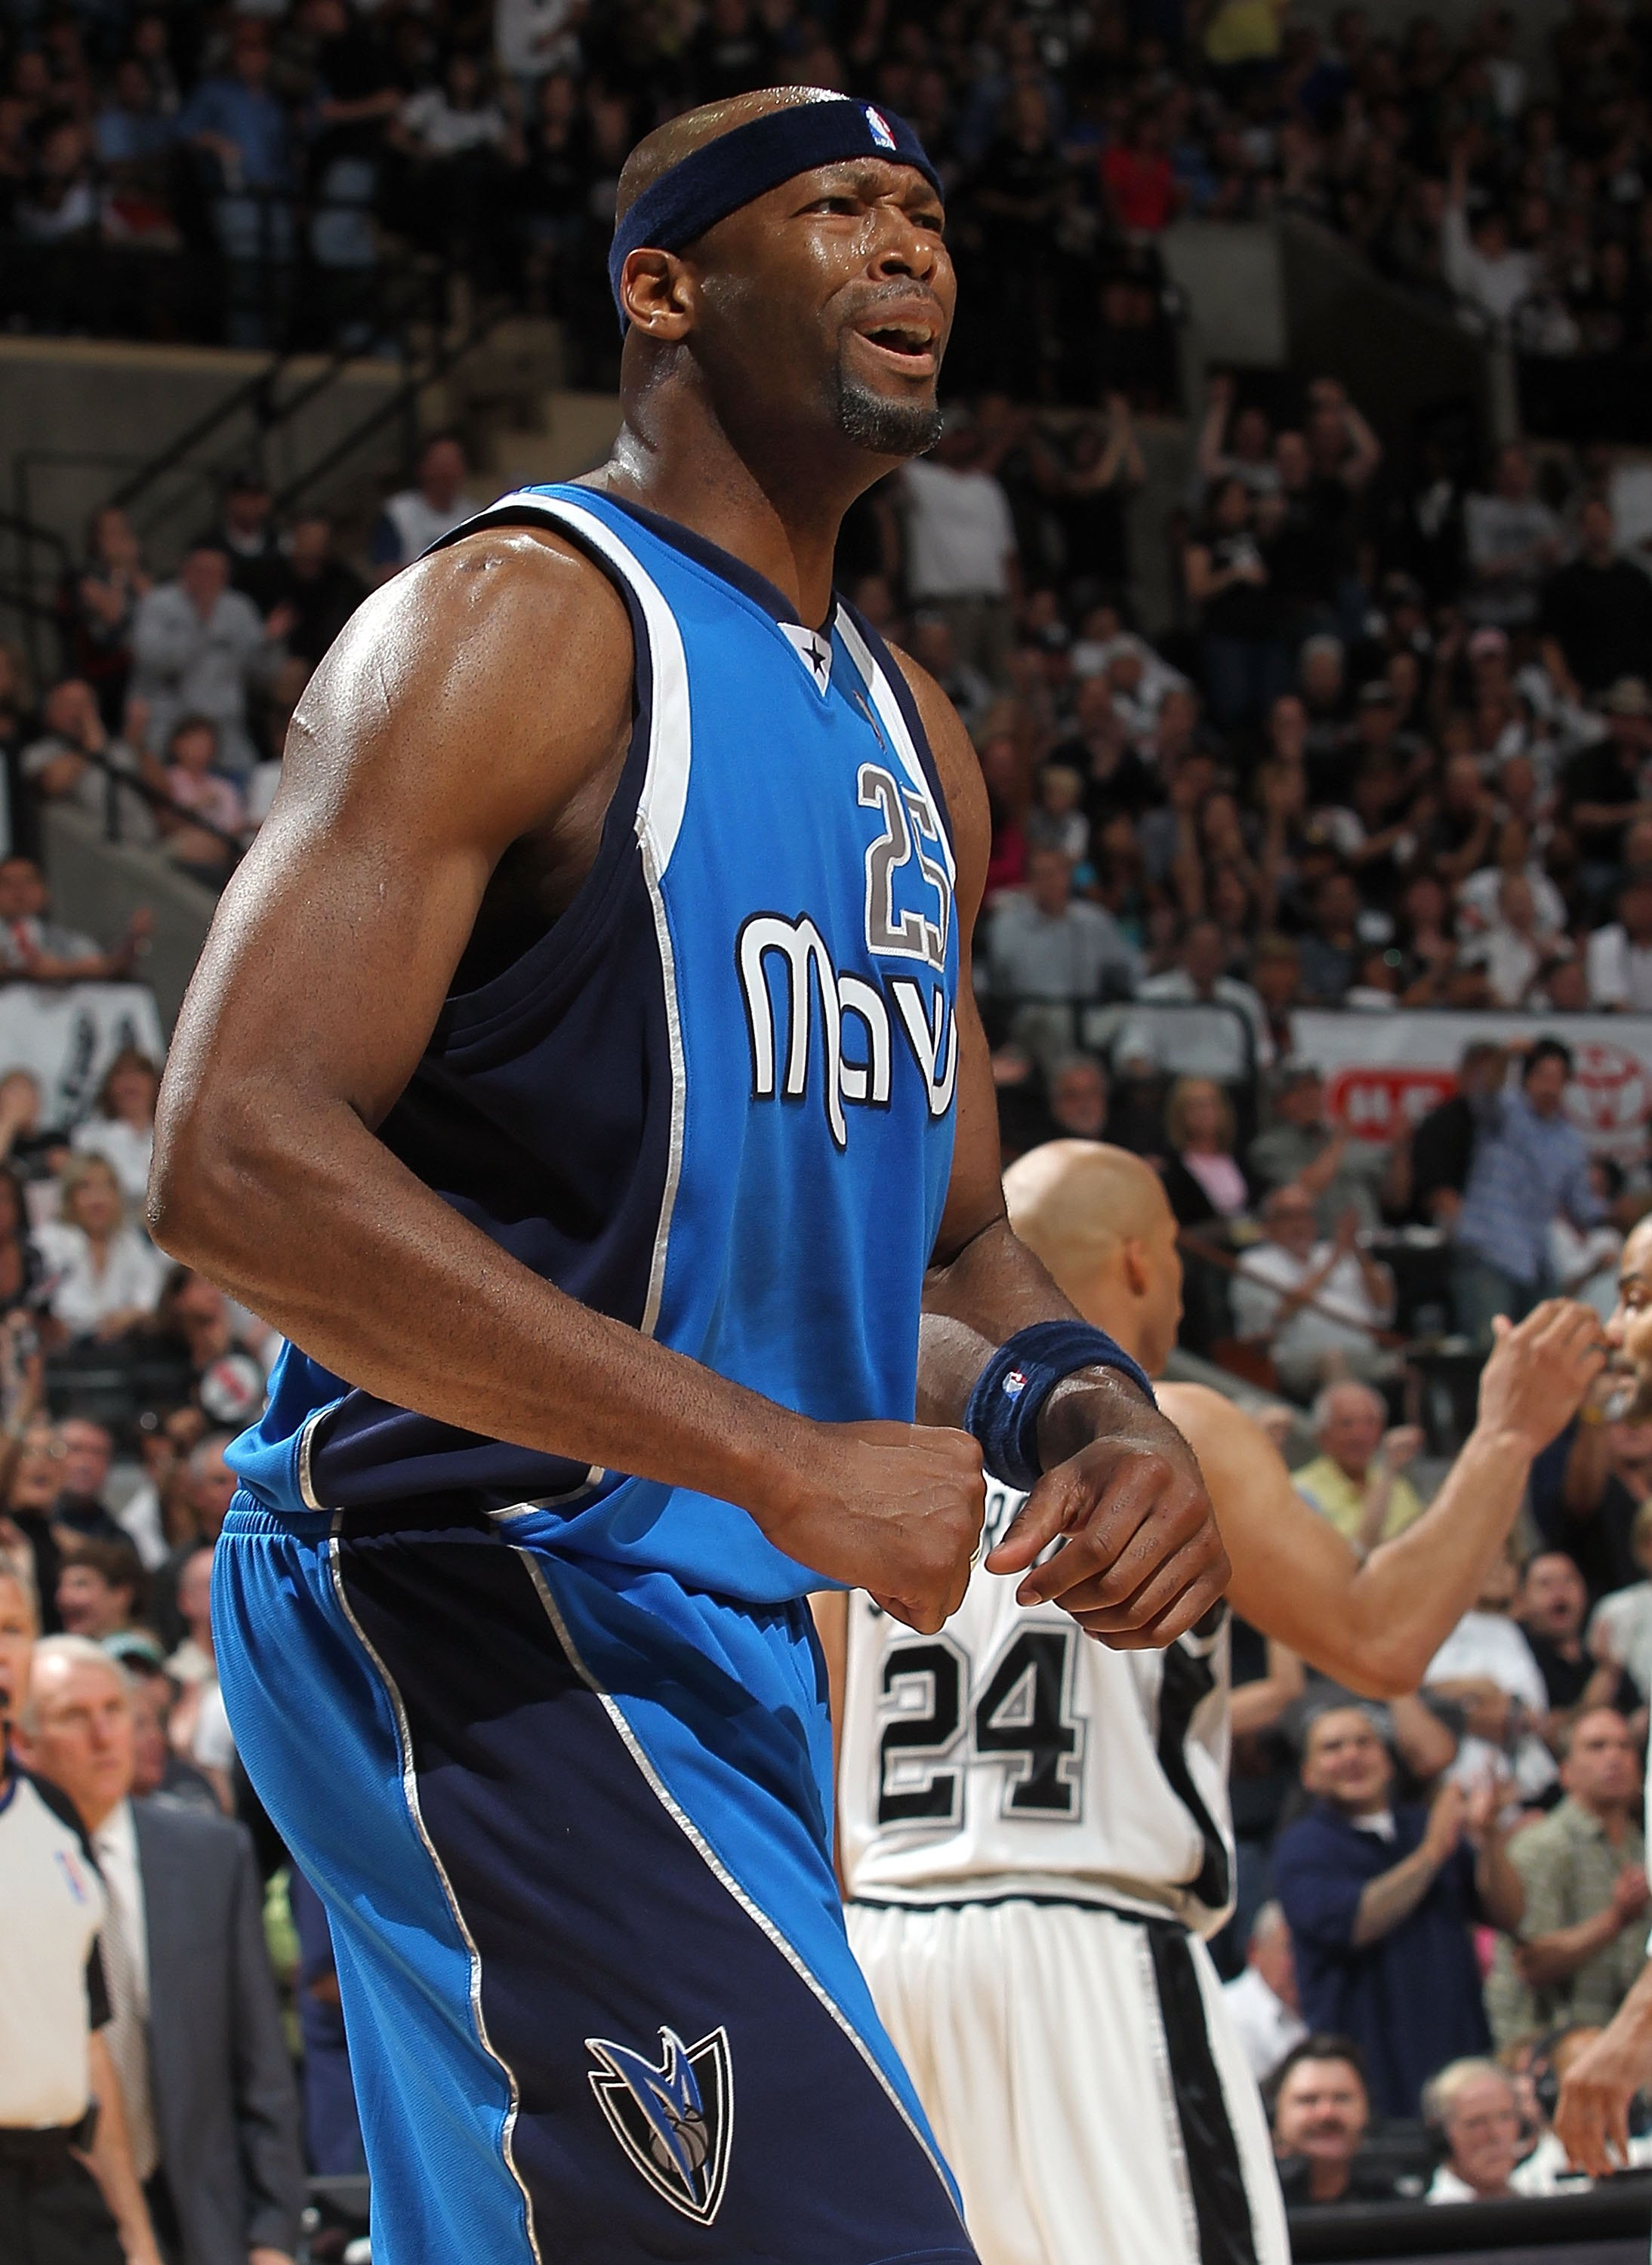 SAN ANTONIO - APRIL 25:  Erick Dampier #25 of the Dallas Mavericks in Game Four of the Western Conference Quarterfinals during the 2010 NBA Playoffs at AT&T Center on April 25, 2010 in San Antonio, Texas. NOTE TO USER: User expressly acknowledges and agre